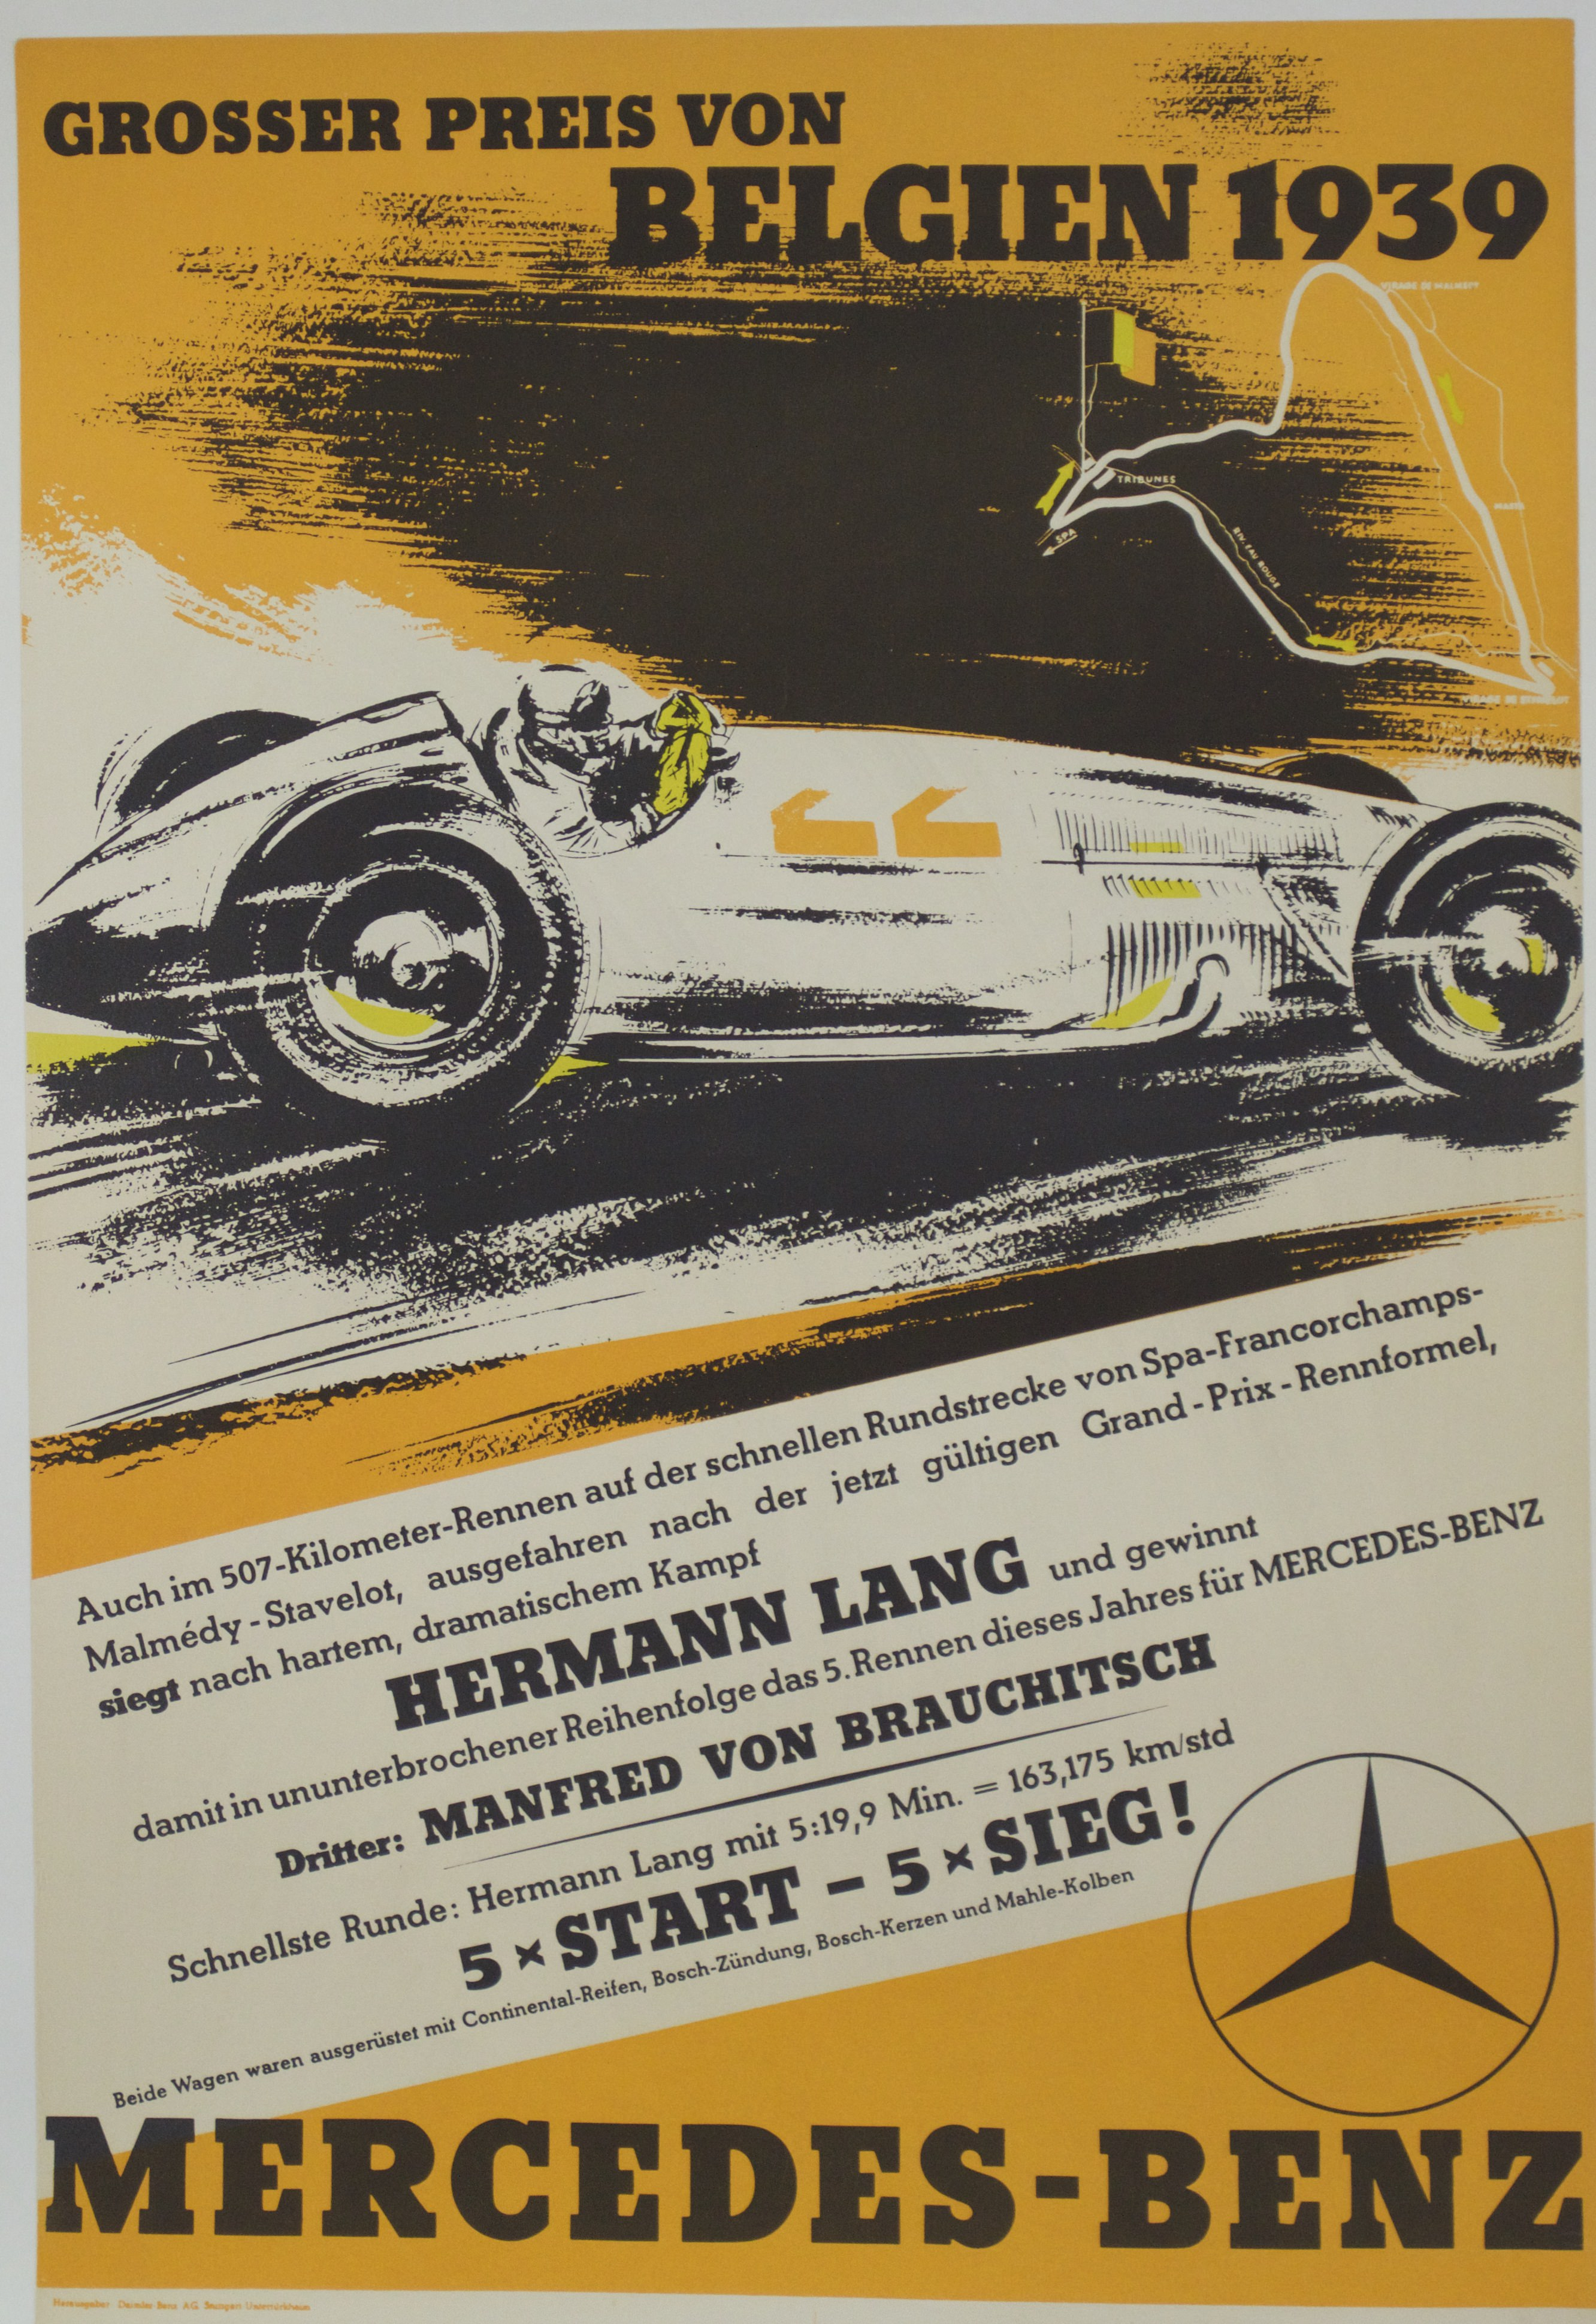 Mike gotwalt indian river poster company page 11 for Vintage mercedes benz posters